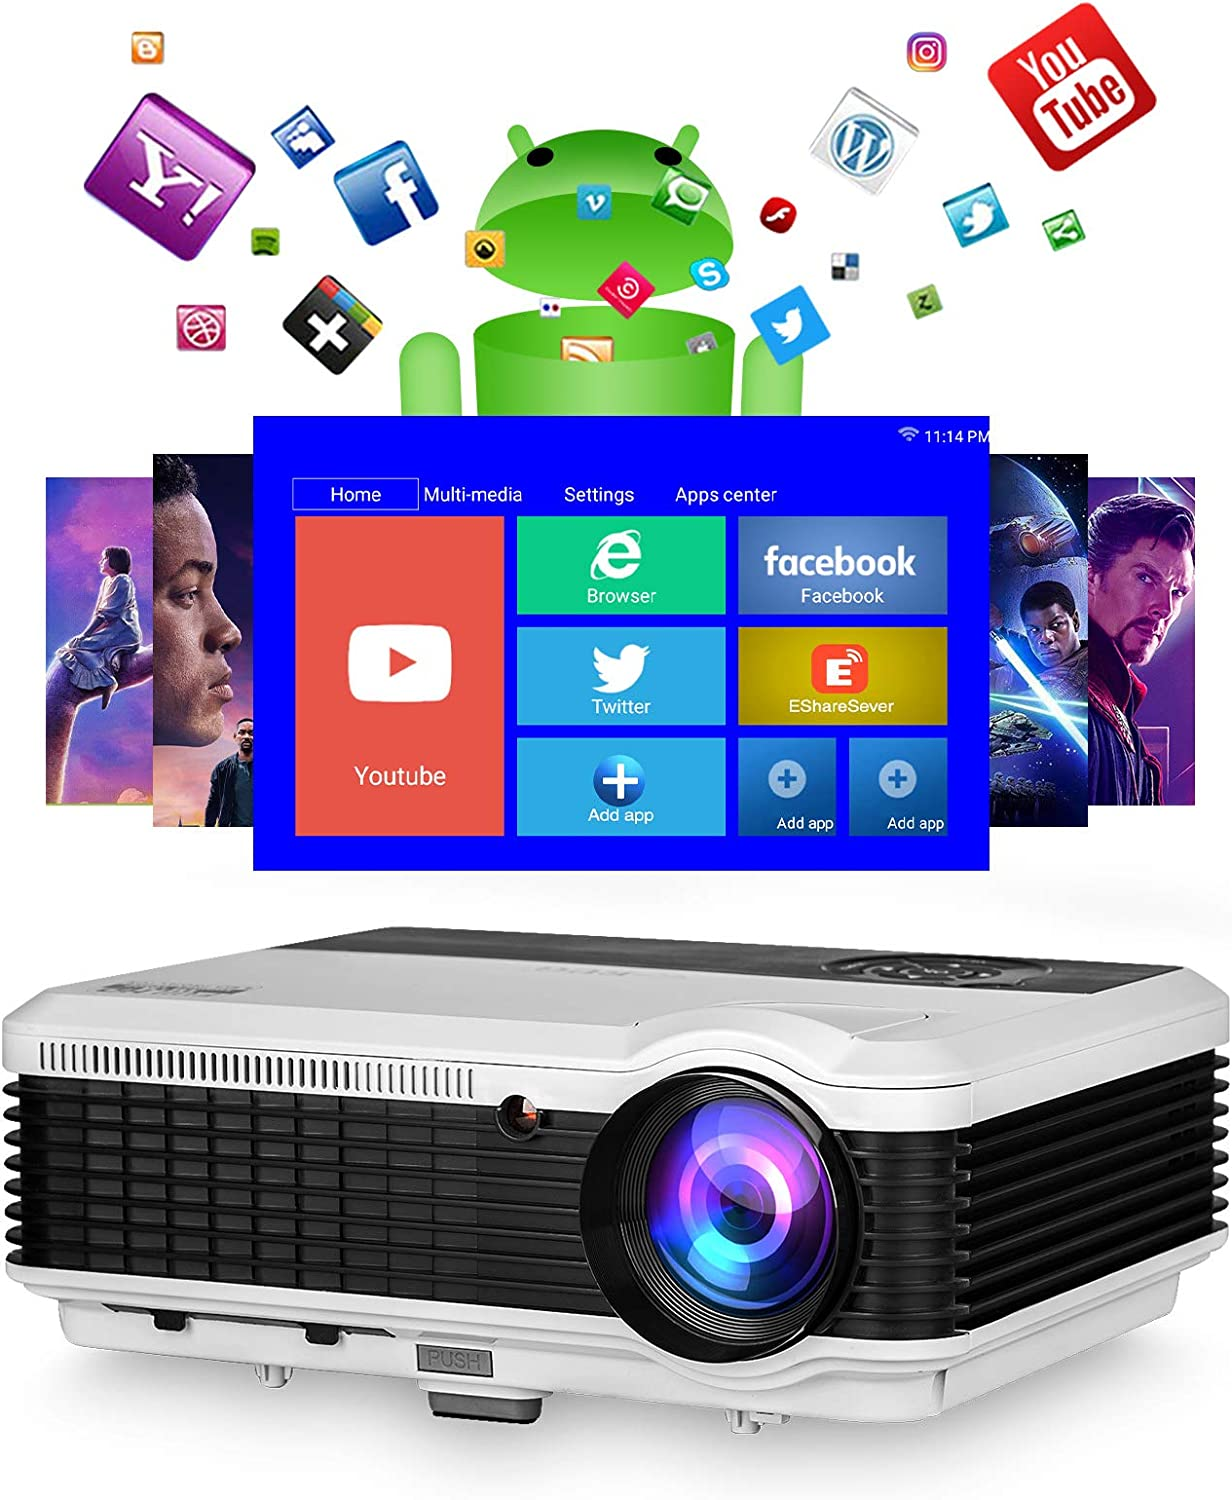 Smart WiFi Projector Wireless Android Bluetooth Outdoor Movie Home Theater Projector Full HD 1080P Screen Mirror 5000L for Video Gaming Compatible with iPhone,Laptop,DVD Player,PS4,TV Stick,HDMI/USB